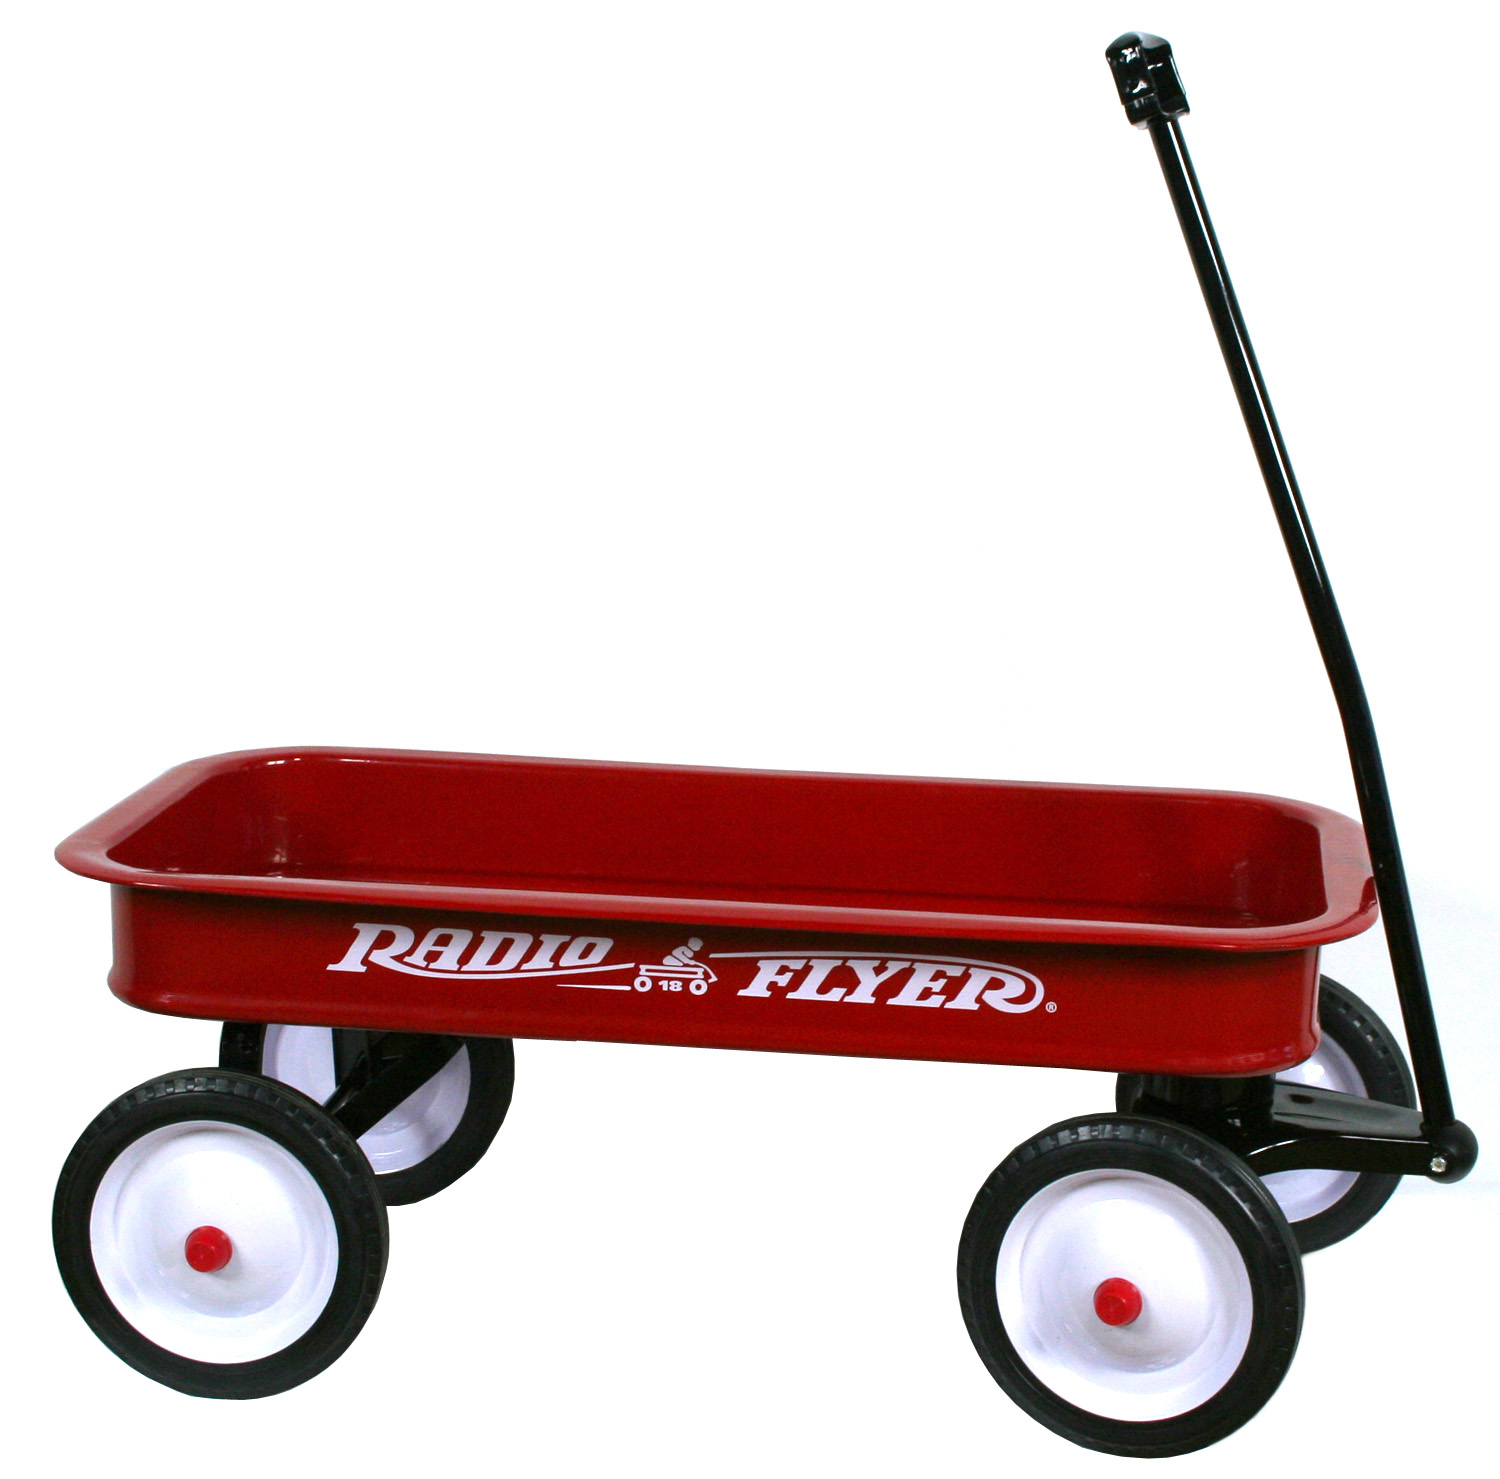 Image detail for -Radio Flyer Radio Flyer Classic Red Wagon 18 - Little Red Wagon PNG